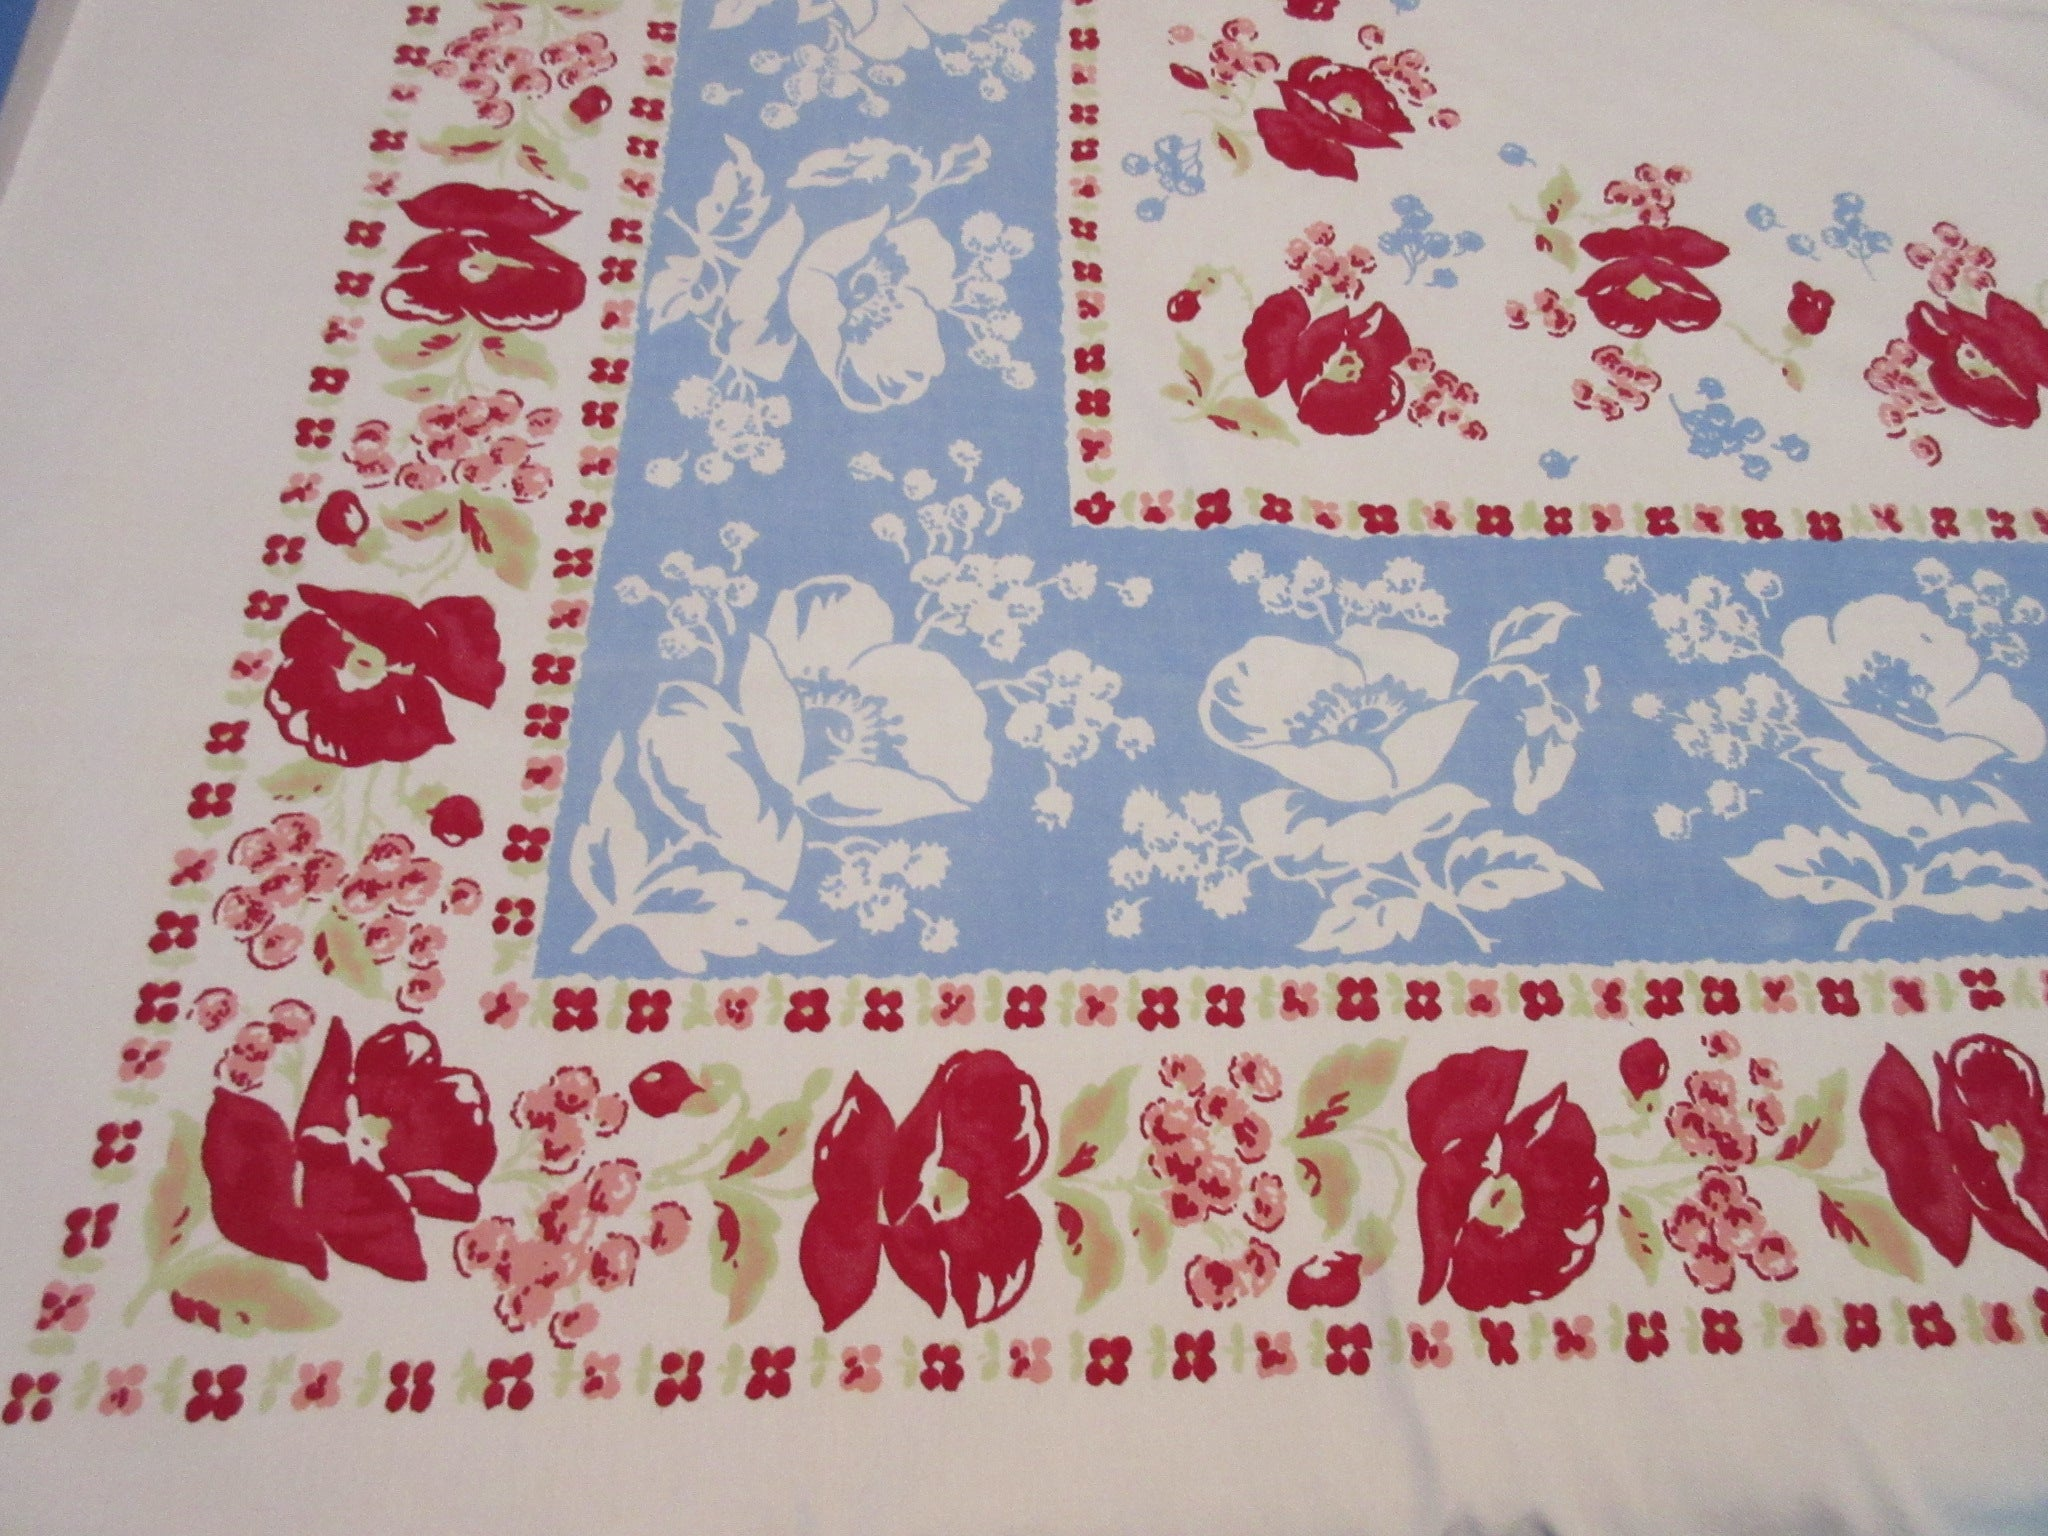 Red Poppies on Blue Reverse Printed Napkins Floral Vintage Printed Tablecloth